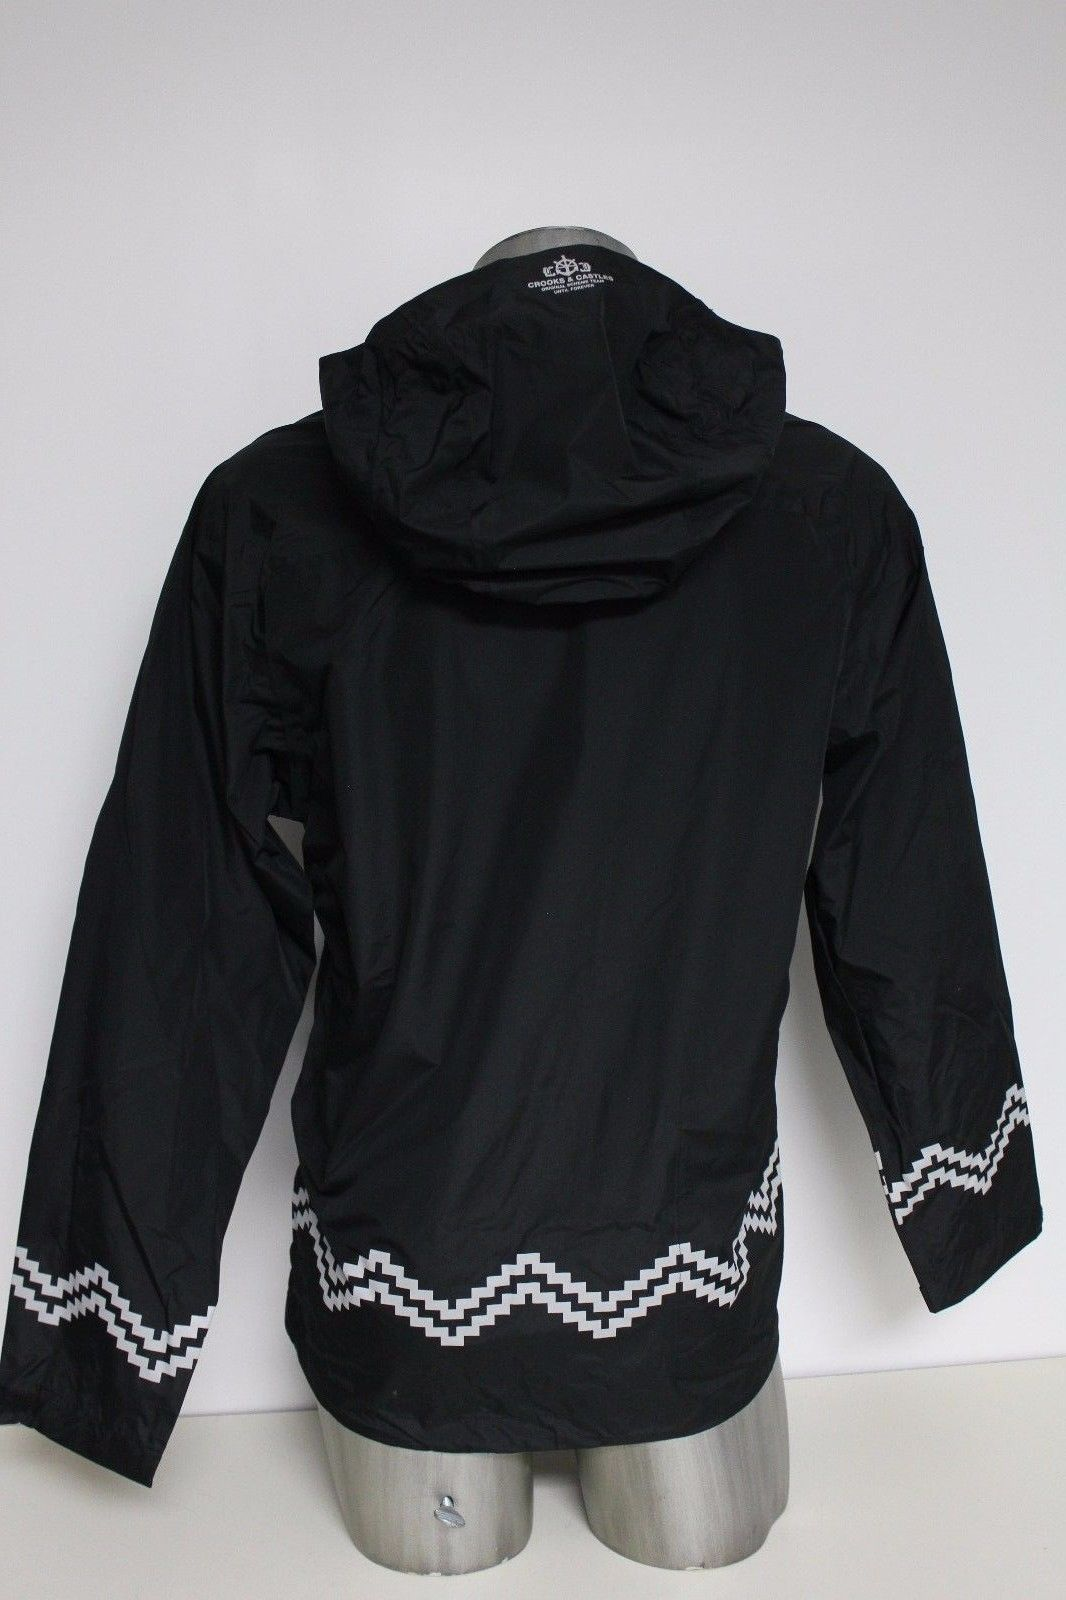 New Crooks & Castles Men's Woven Jacket Polyester Port Authority Black Size XL image 6